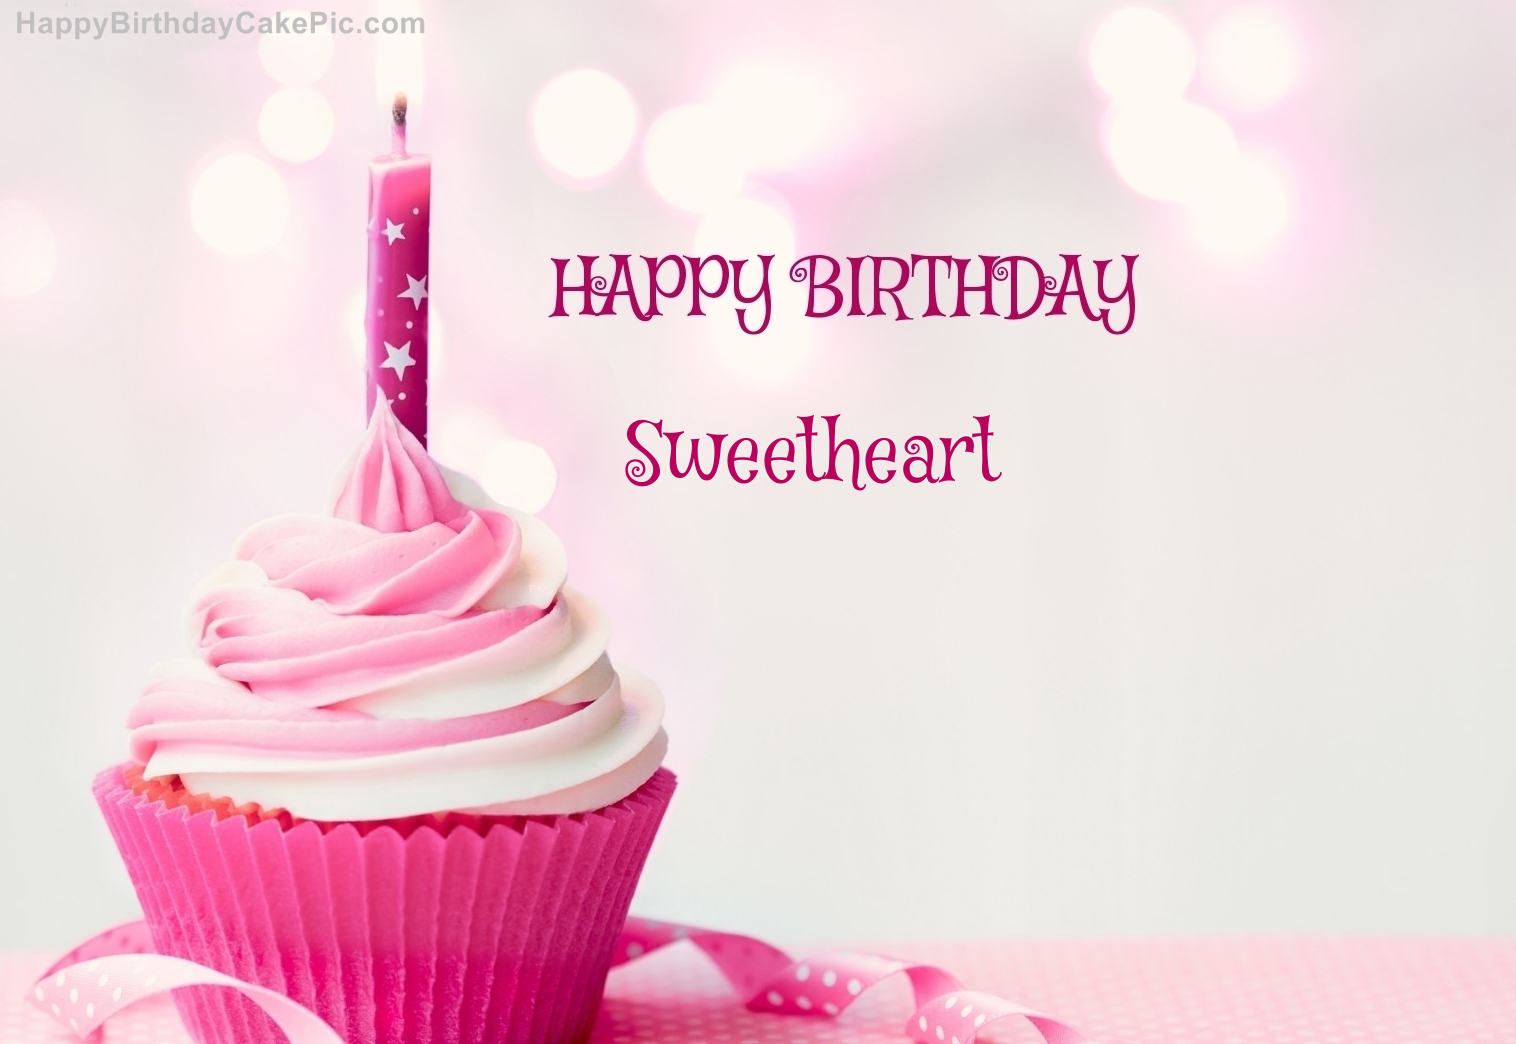 Happy Birthday Cupcake Candle Pink Cake For Sweetheart